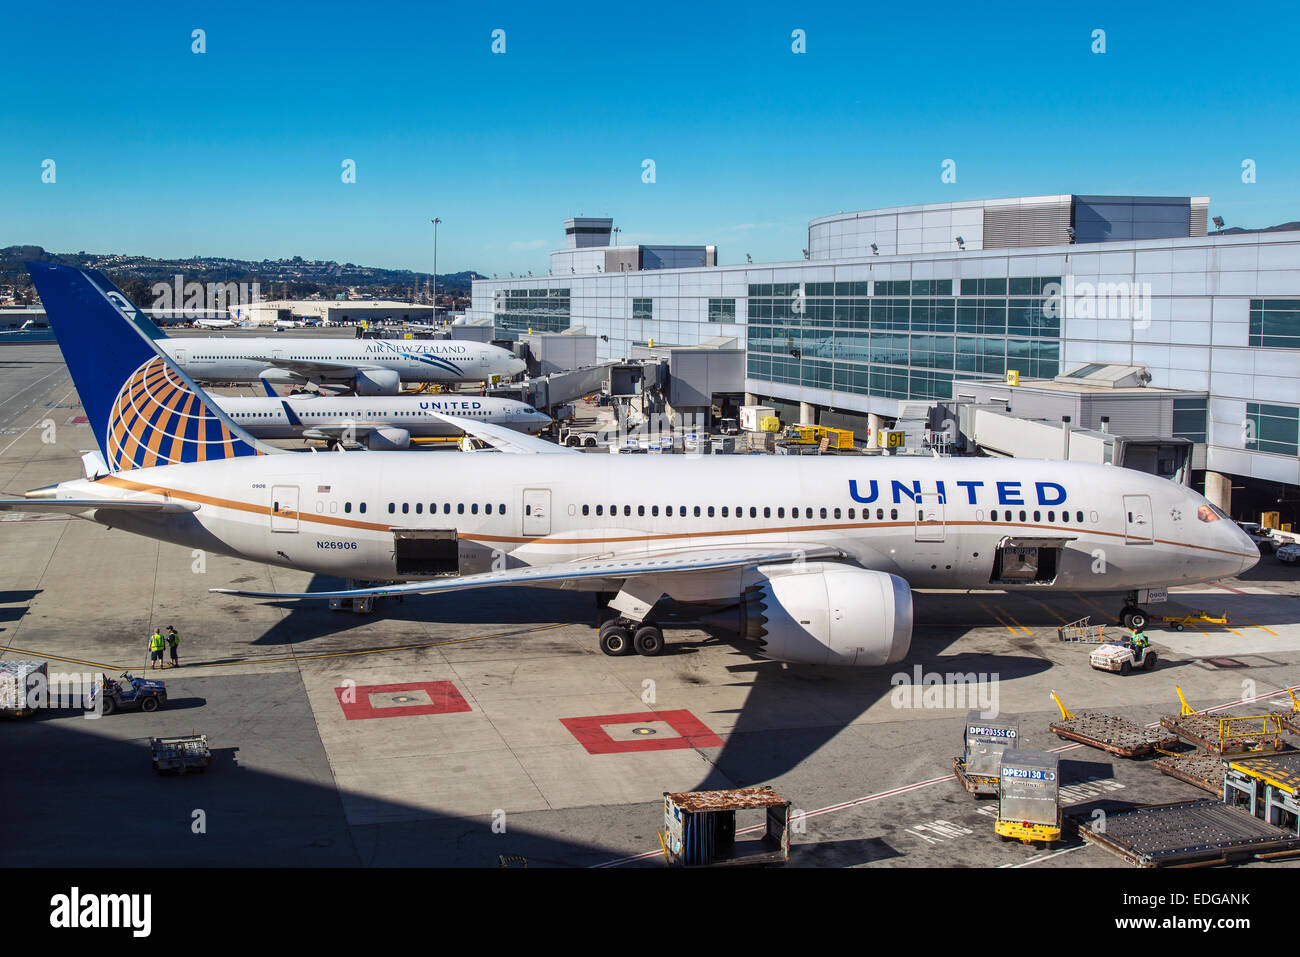 United Airlines Boeing 787-800 Dreamliner at San Francisco international airport, San Francisco, California, USA - Stock Image